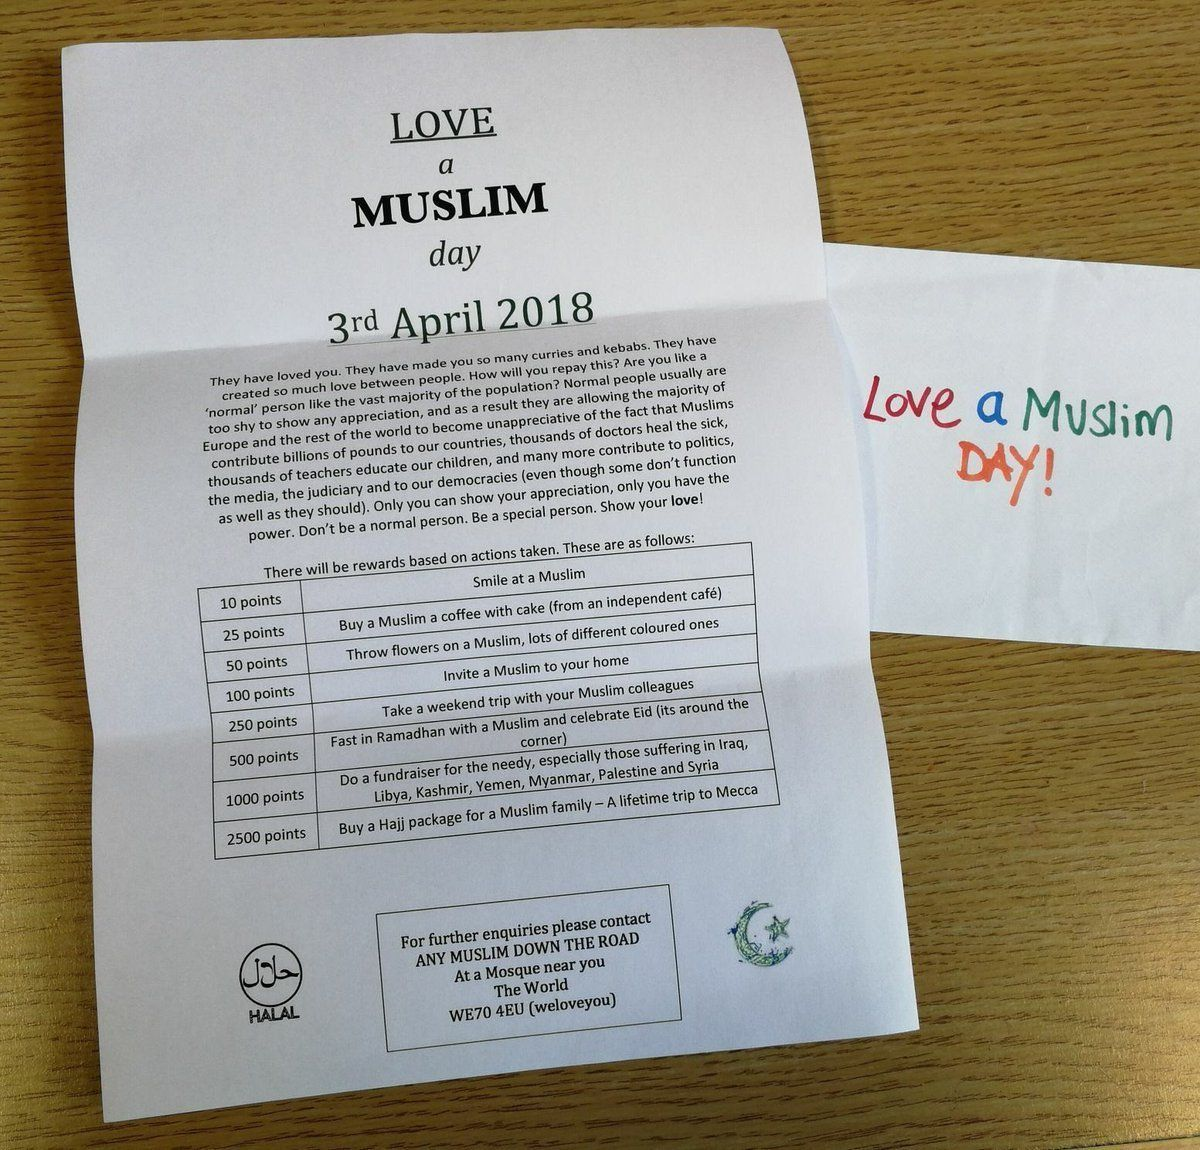 Love a Muslim (To) Day